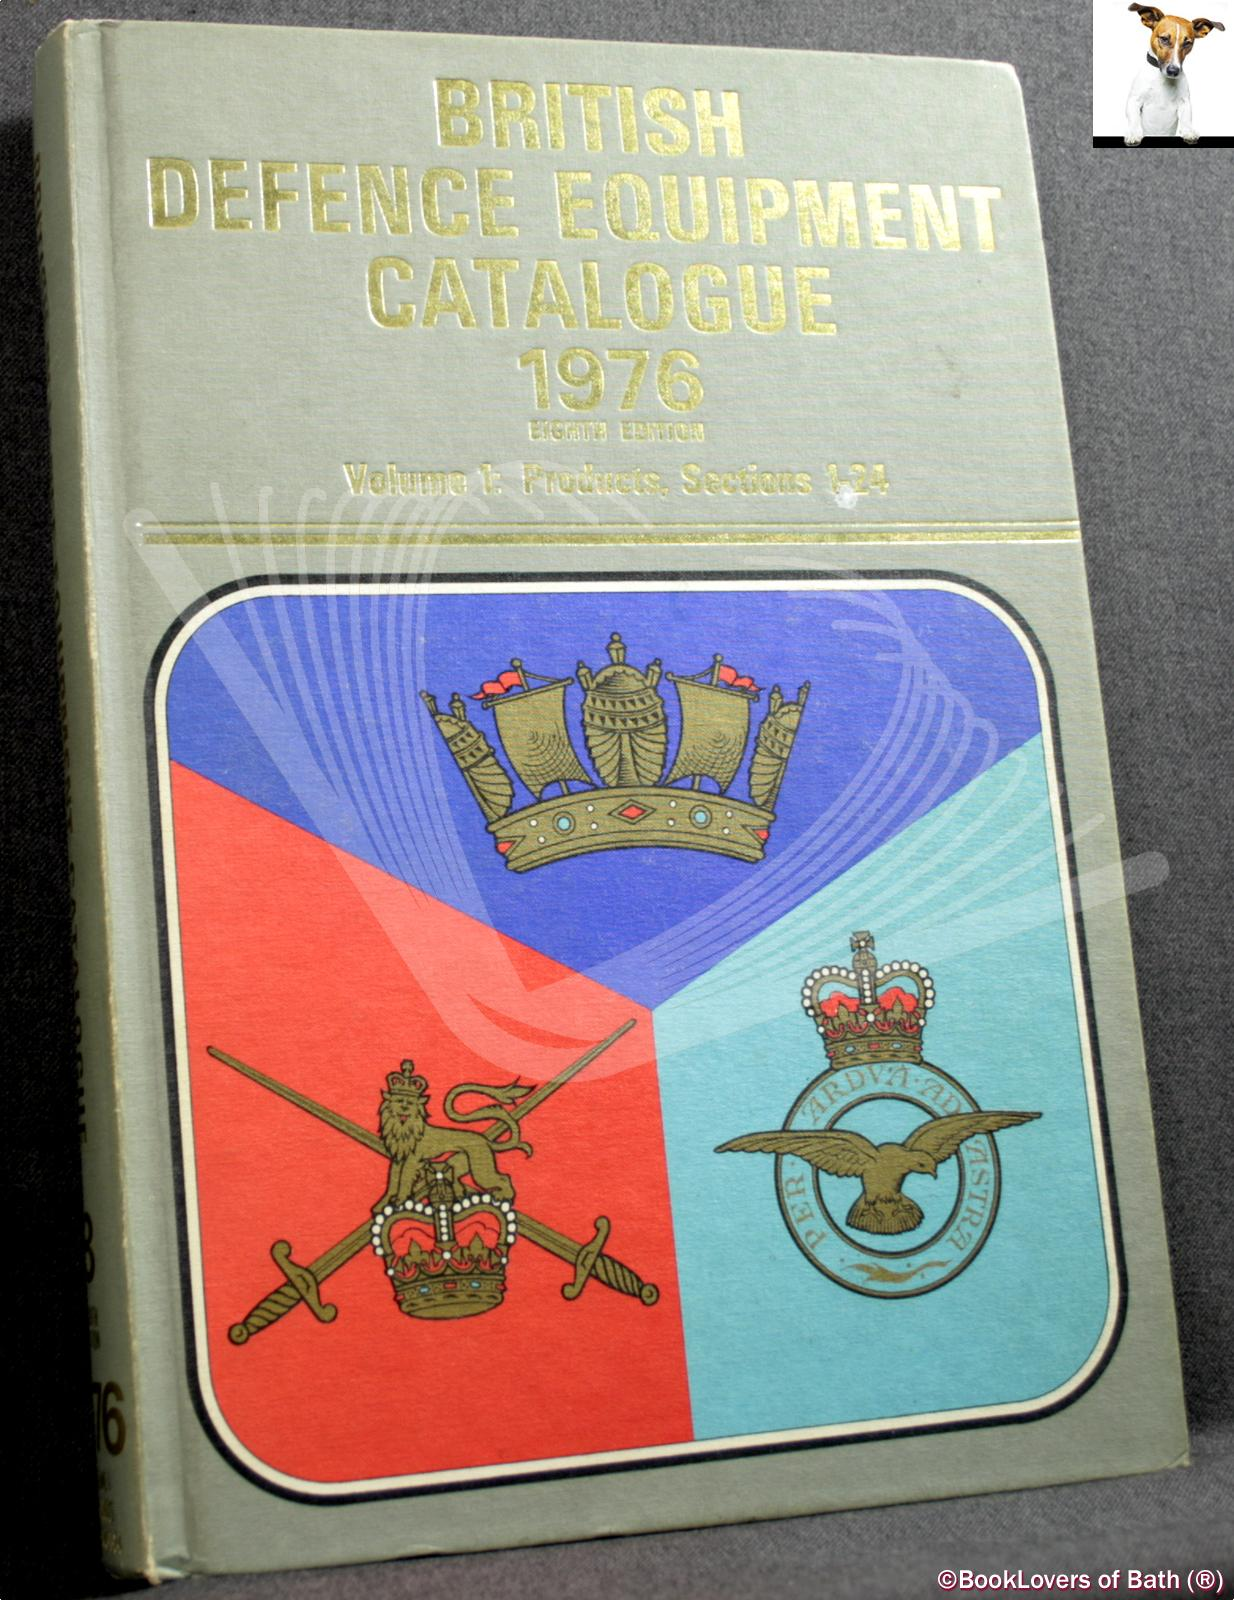 British Defence Equipment Catalogue Eighth Edition 1976 Volume 1: Products, Sections 1-24 - Anon.